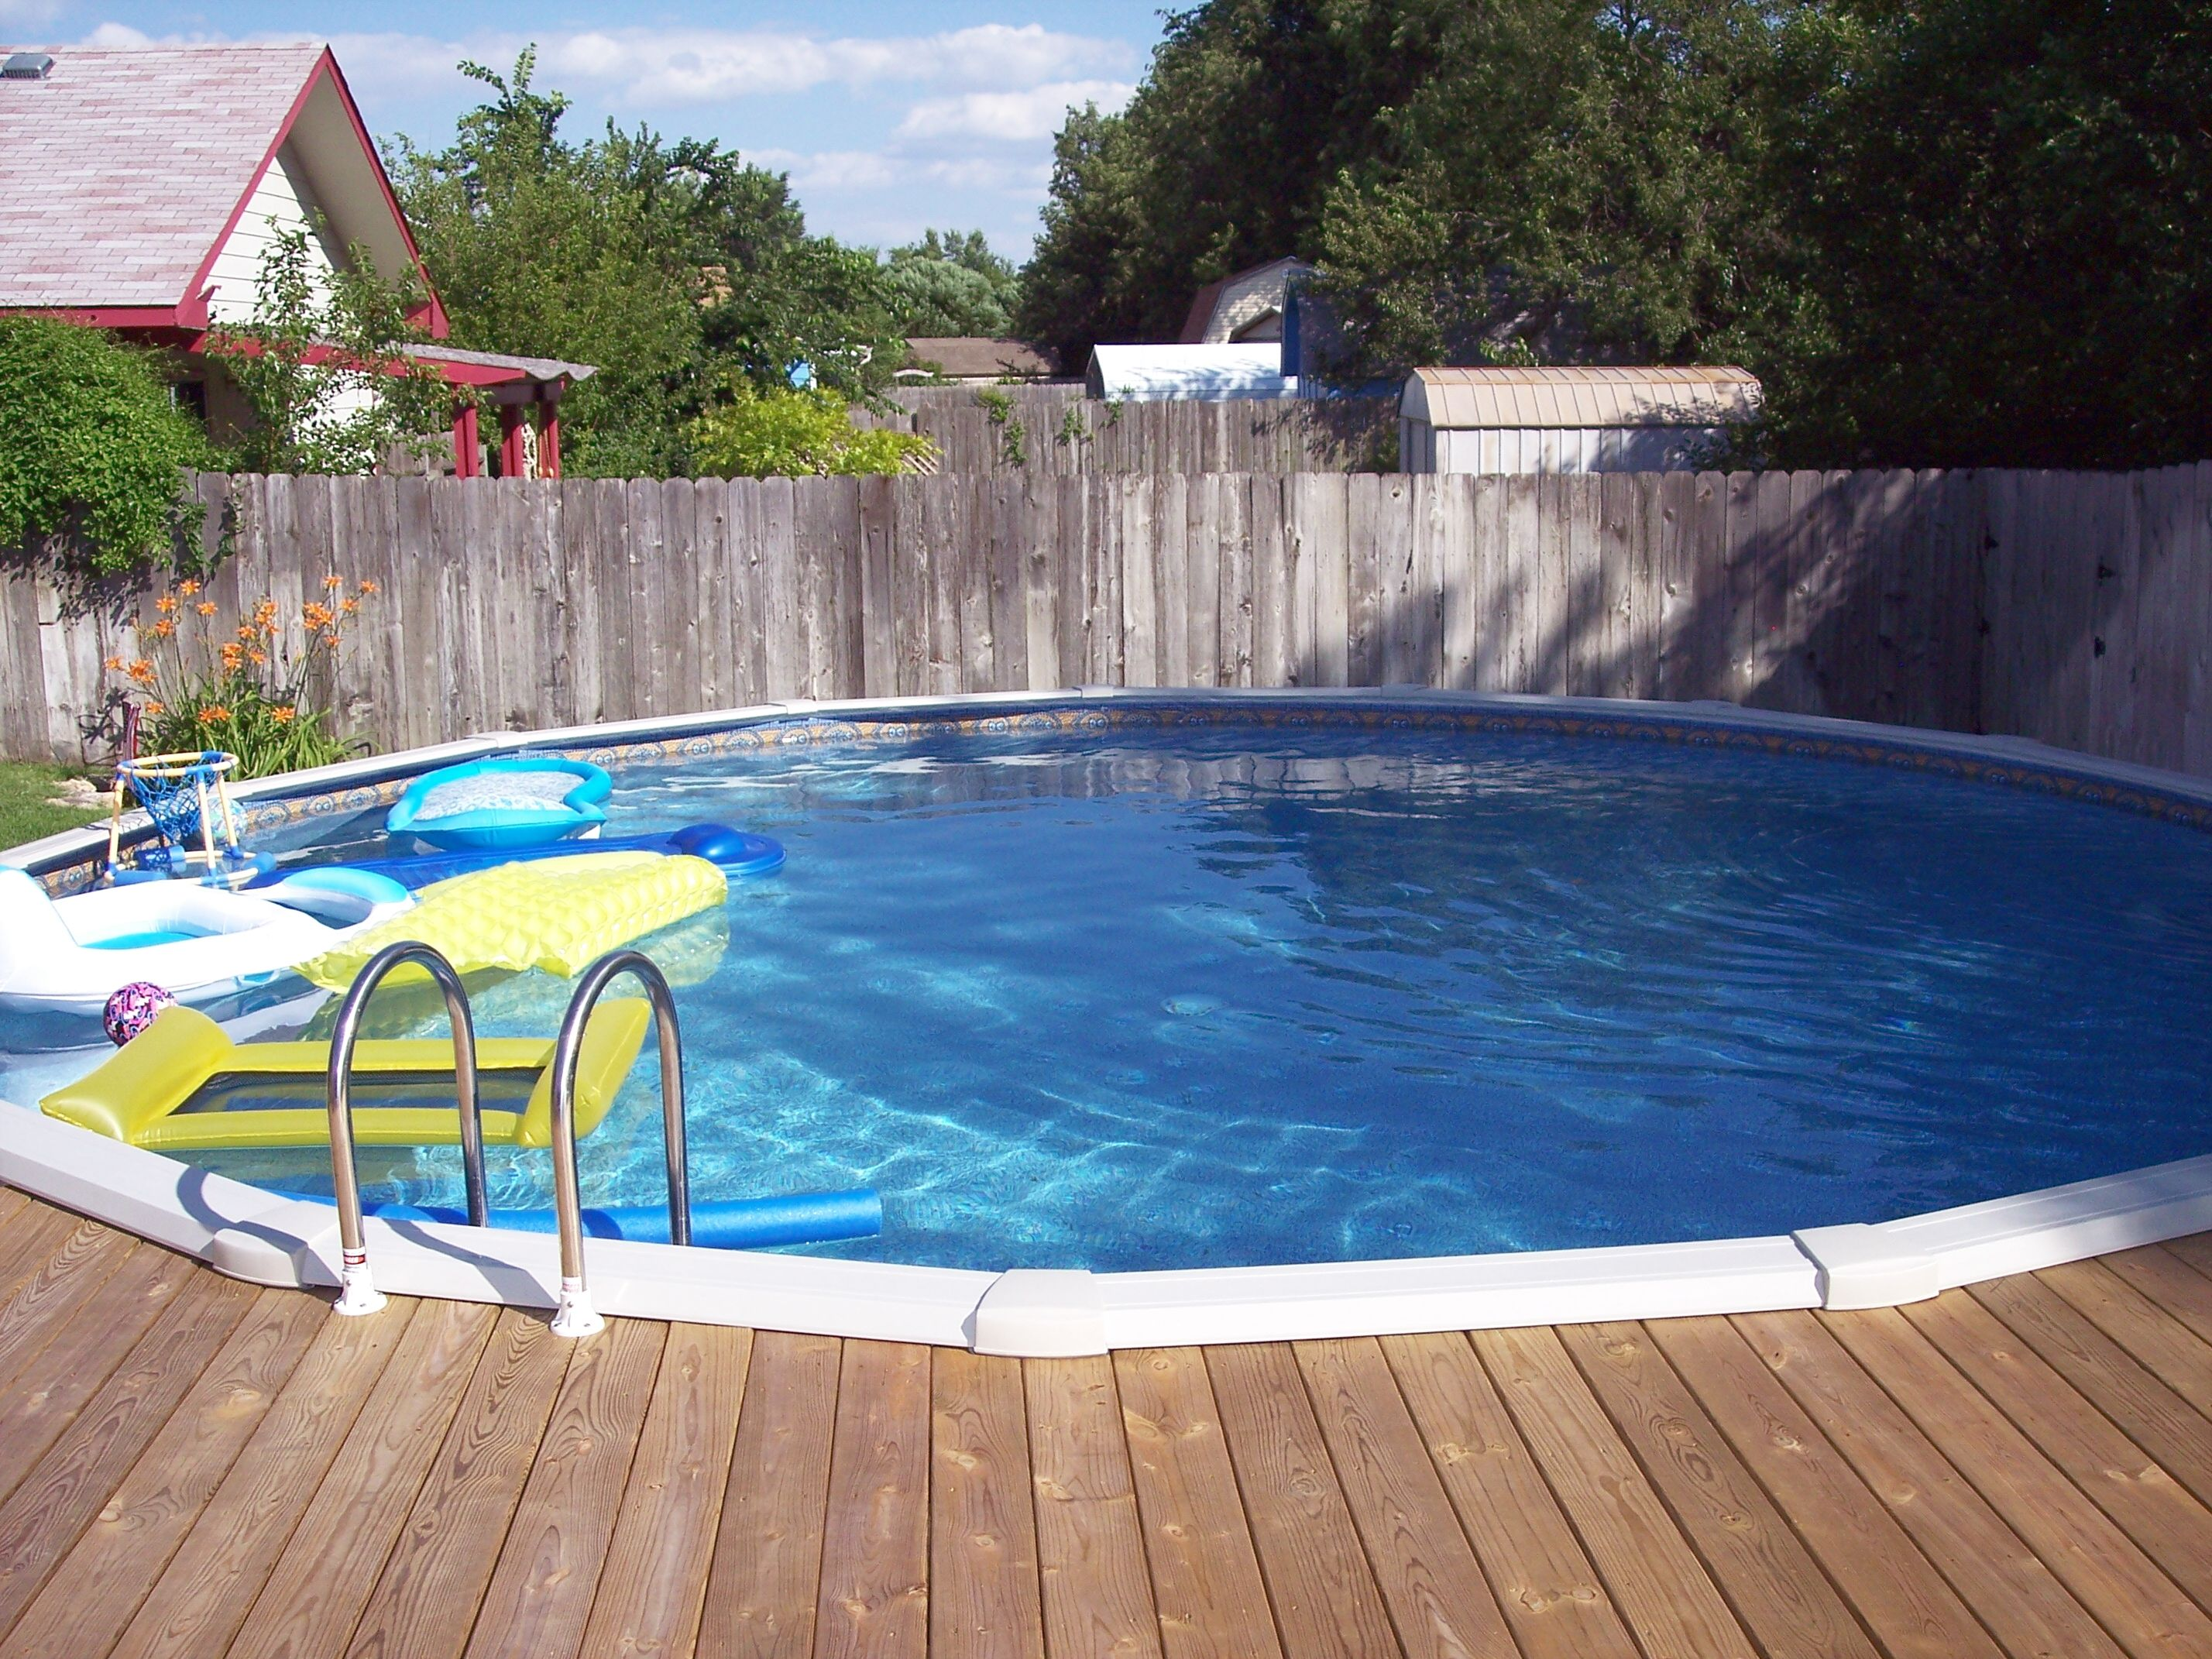 view from the deck of above ground pool lowered 24